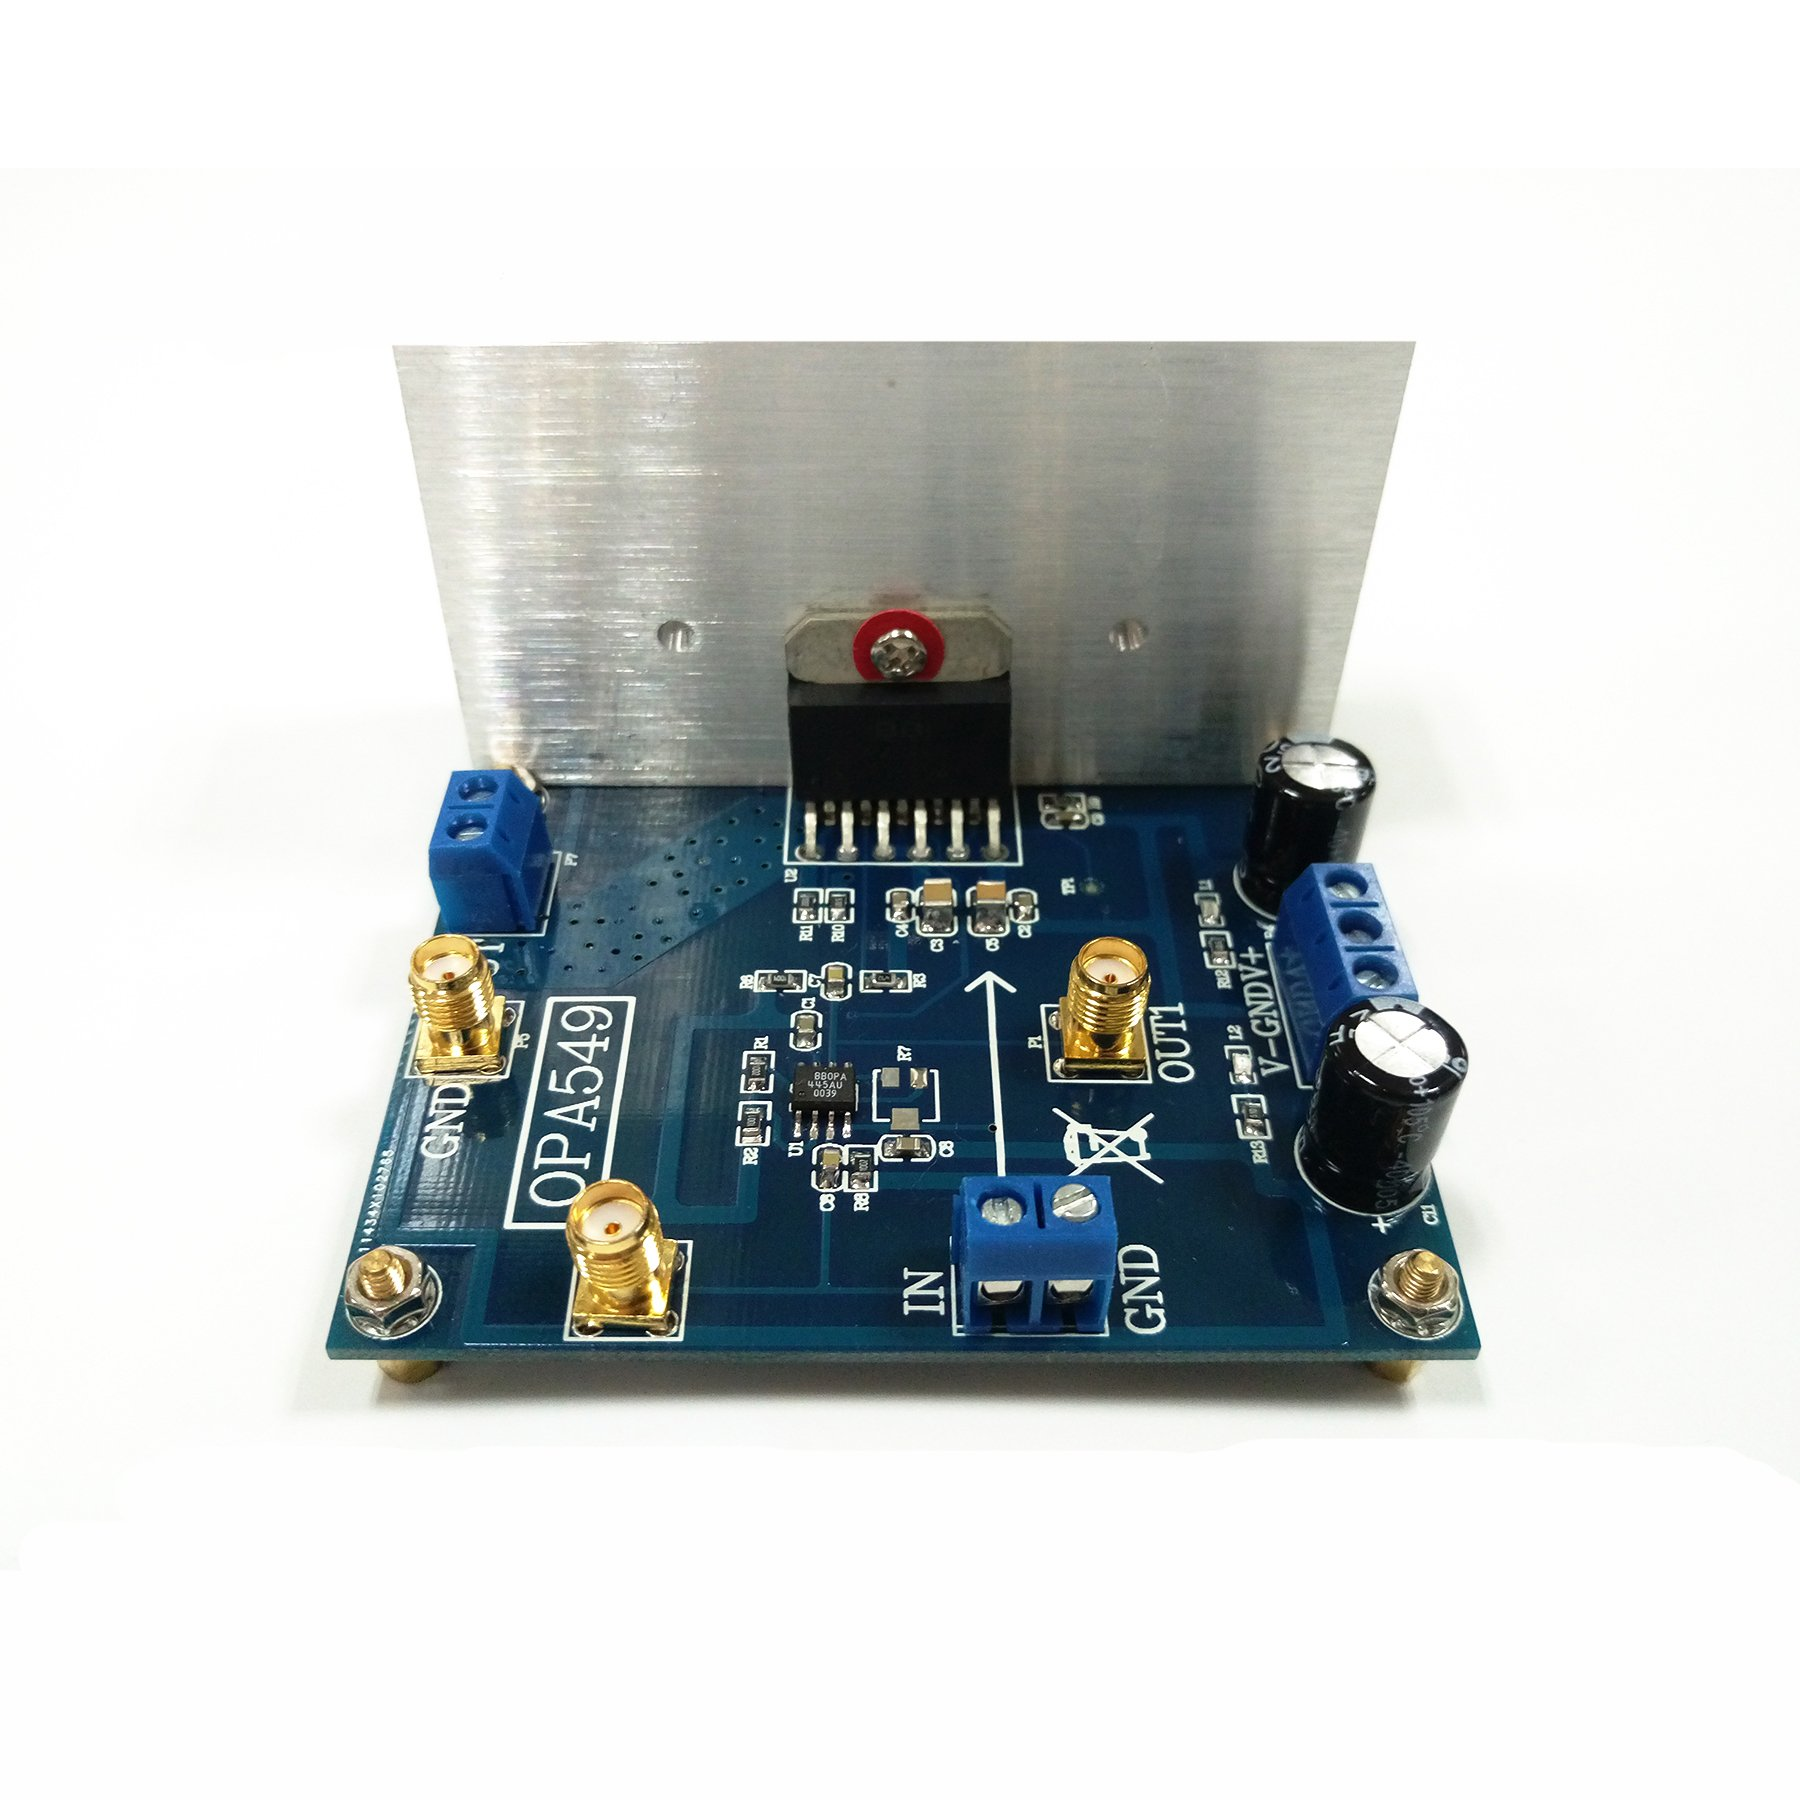 Taidacent OPA549 Audio Power Amplifier 8A Current High Voltage High Current Op Amp with Excellent Output Swing